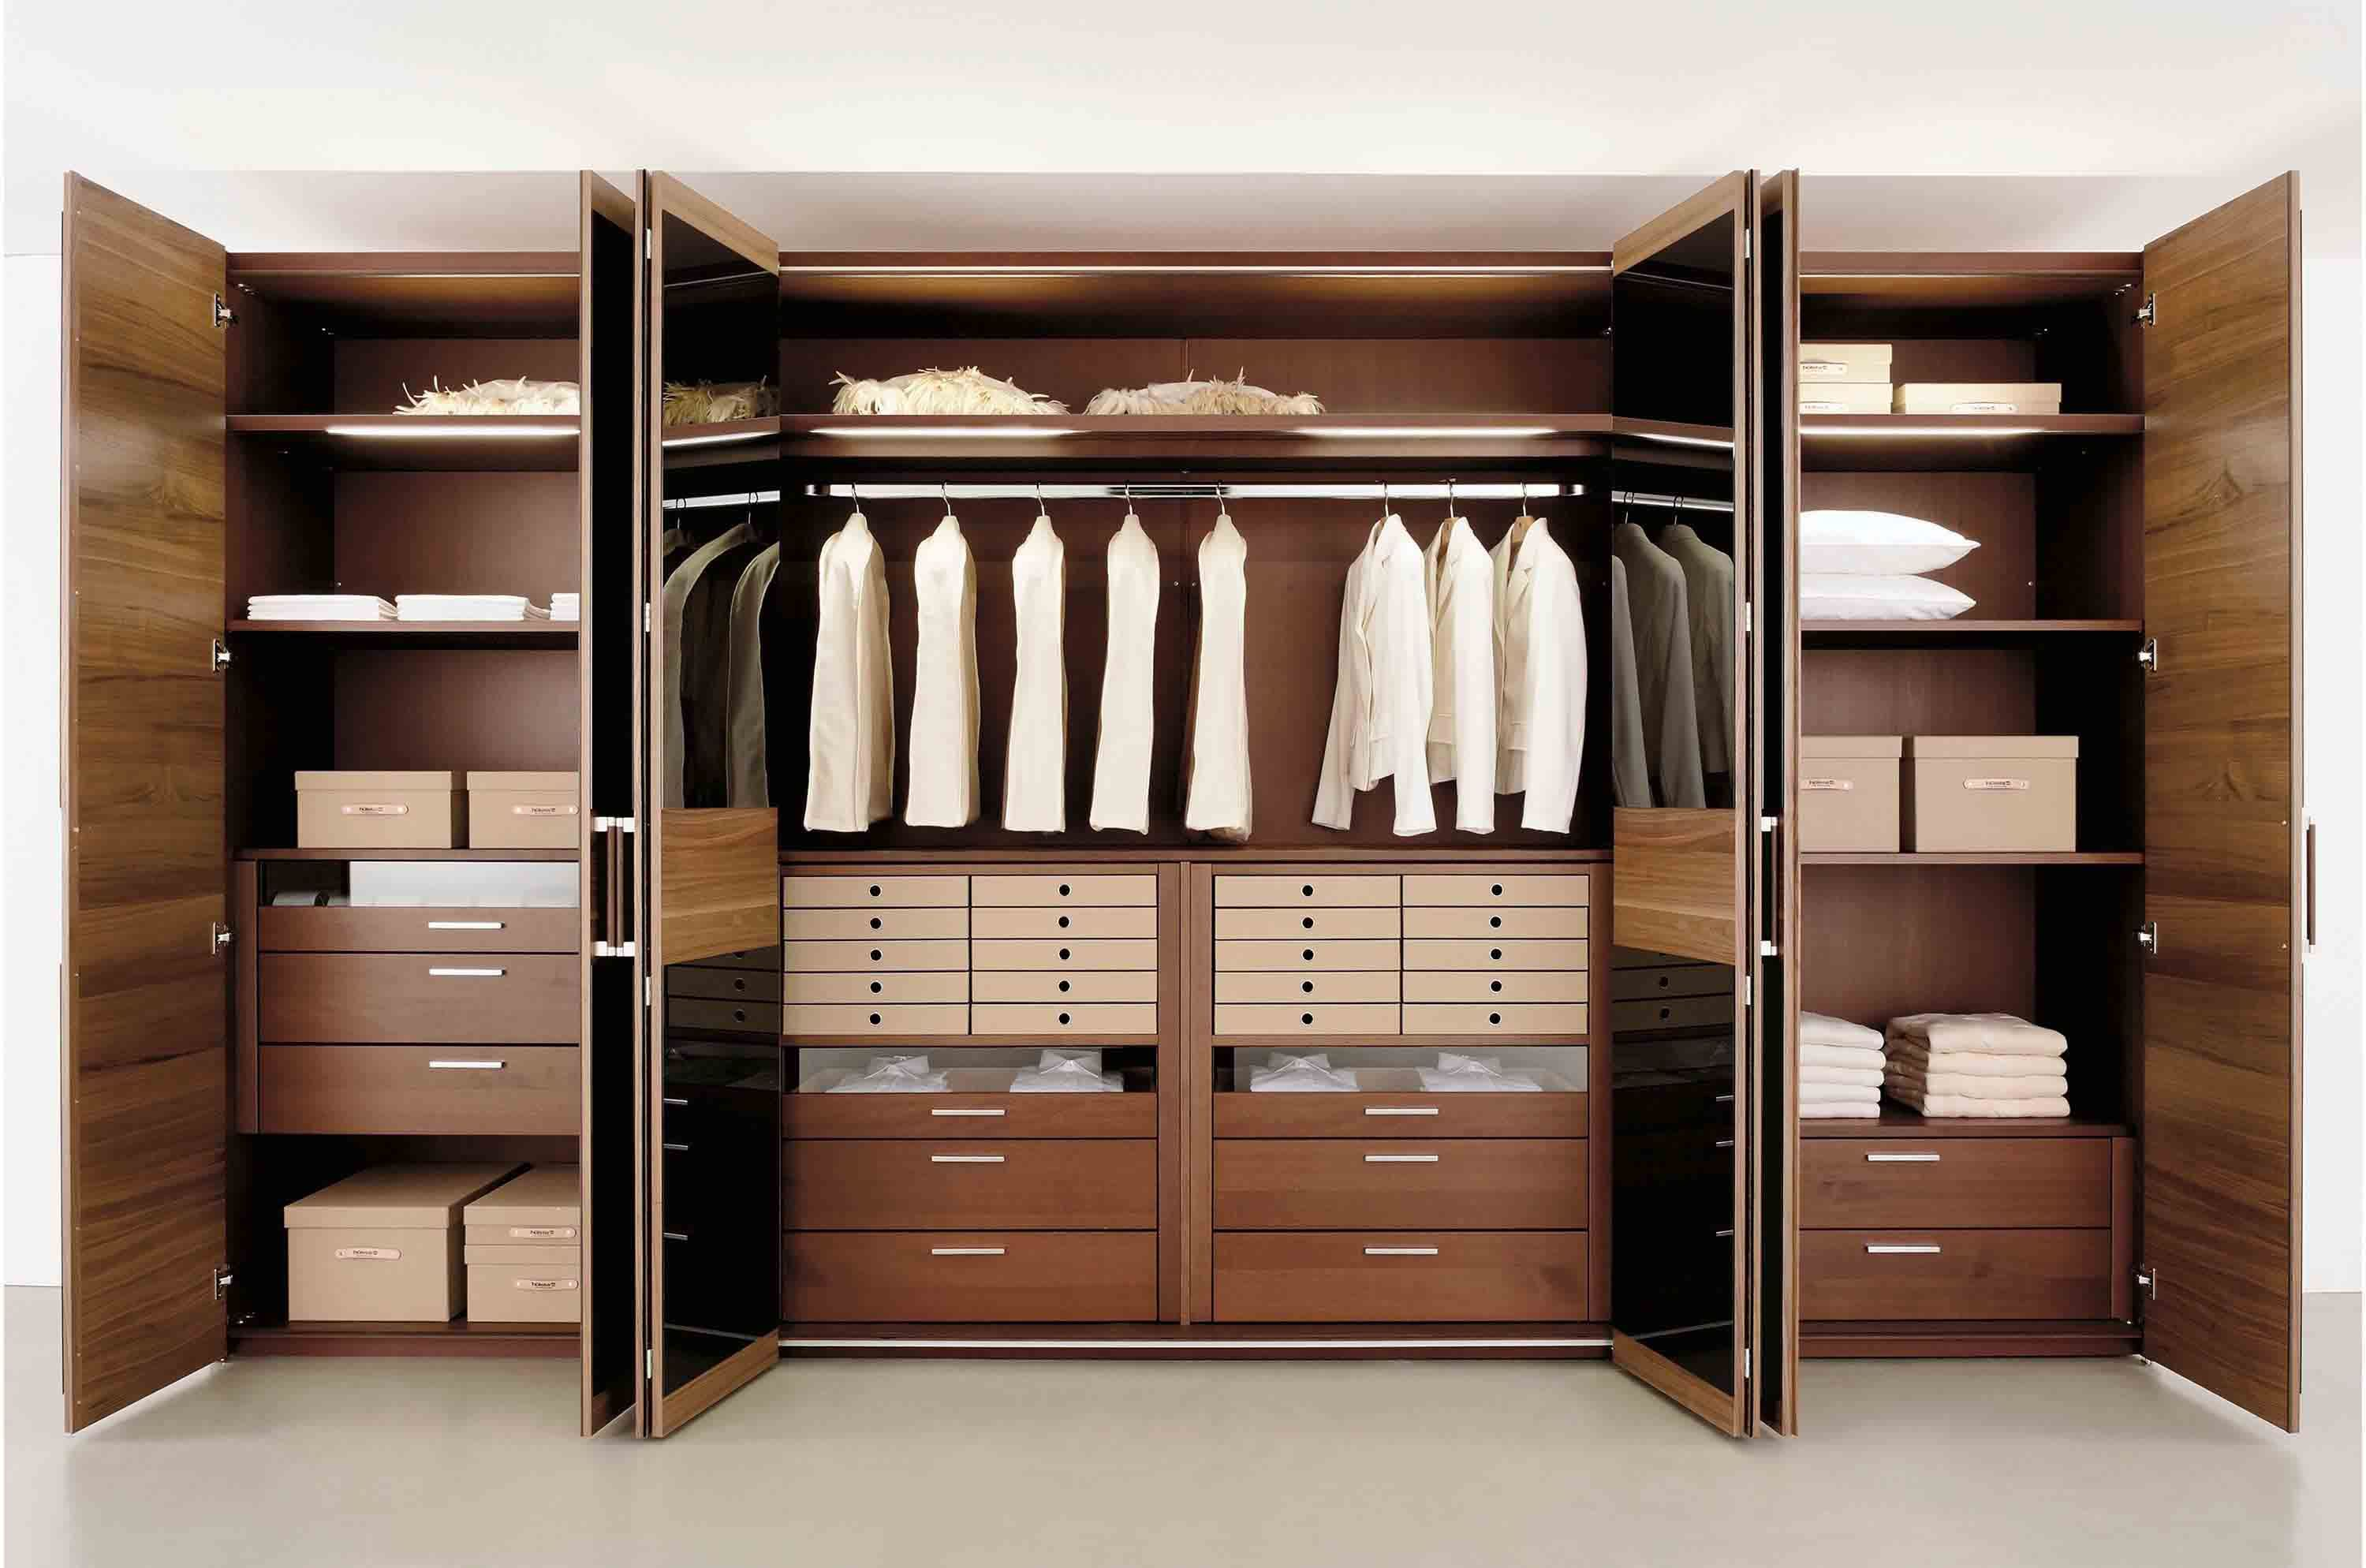 Modern Bedroom Wardrobes, The More Functions A Simple Item Can Execute, The  More Modern It Is. Modern Bedroom Wardrobes Donu0027t Just Deserve Being Called  ...